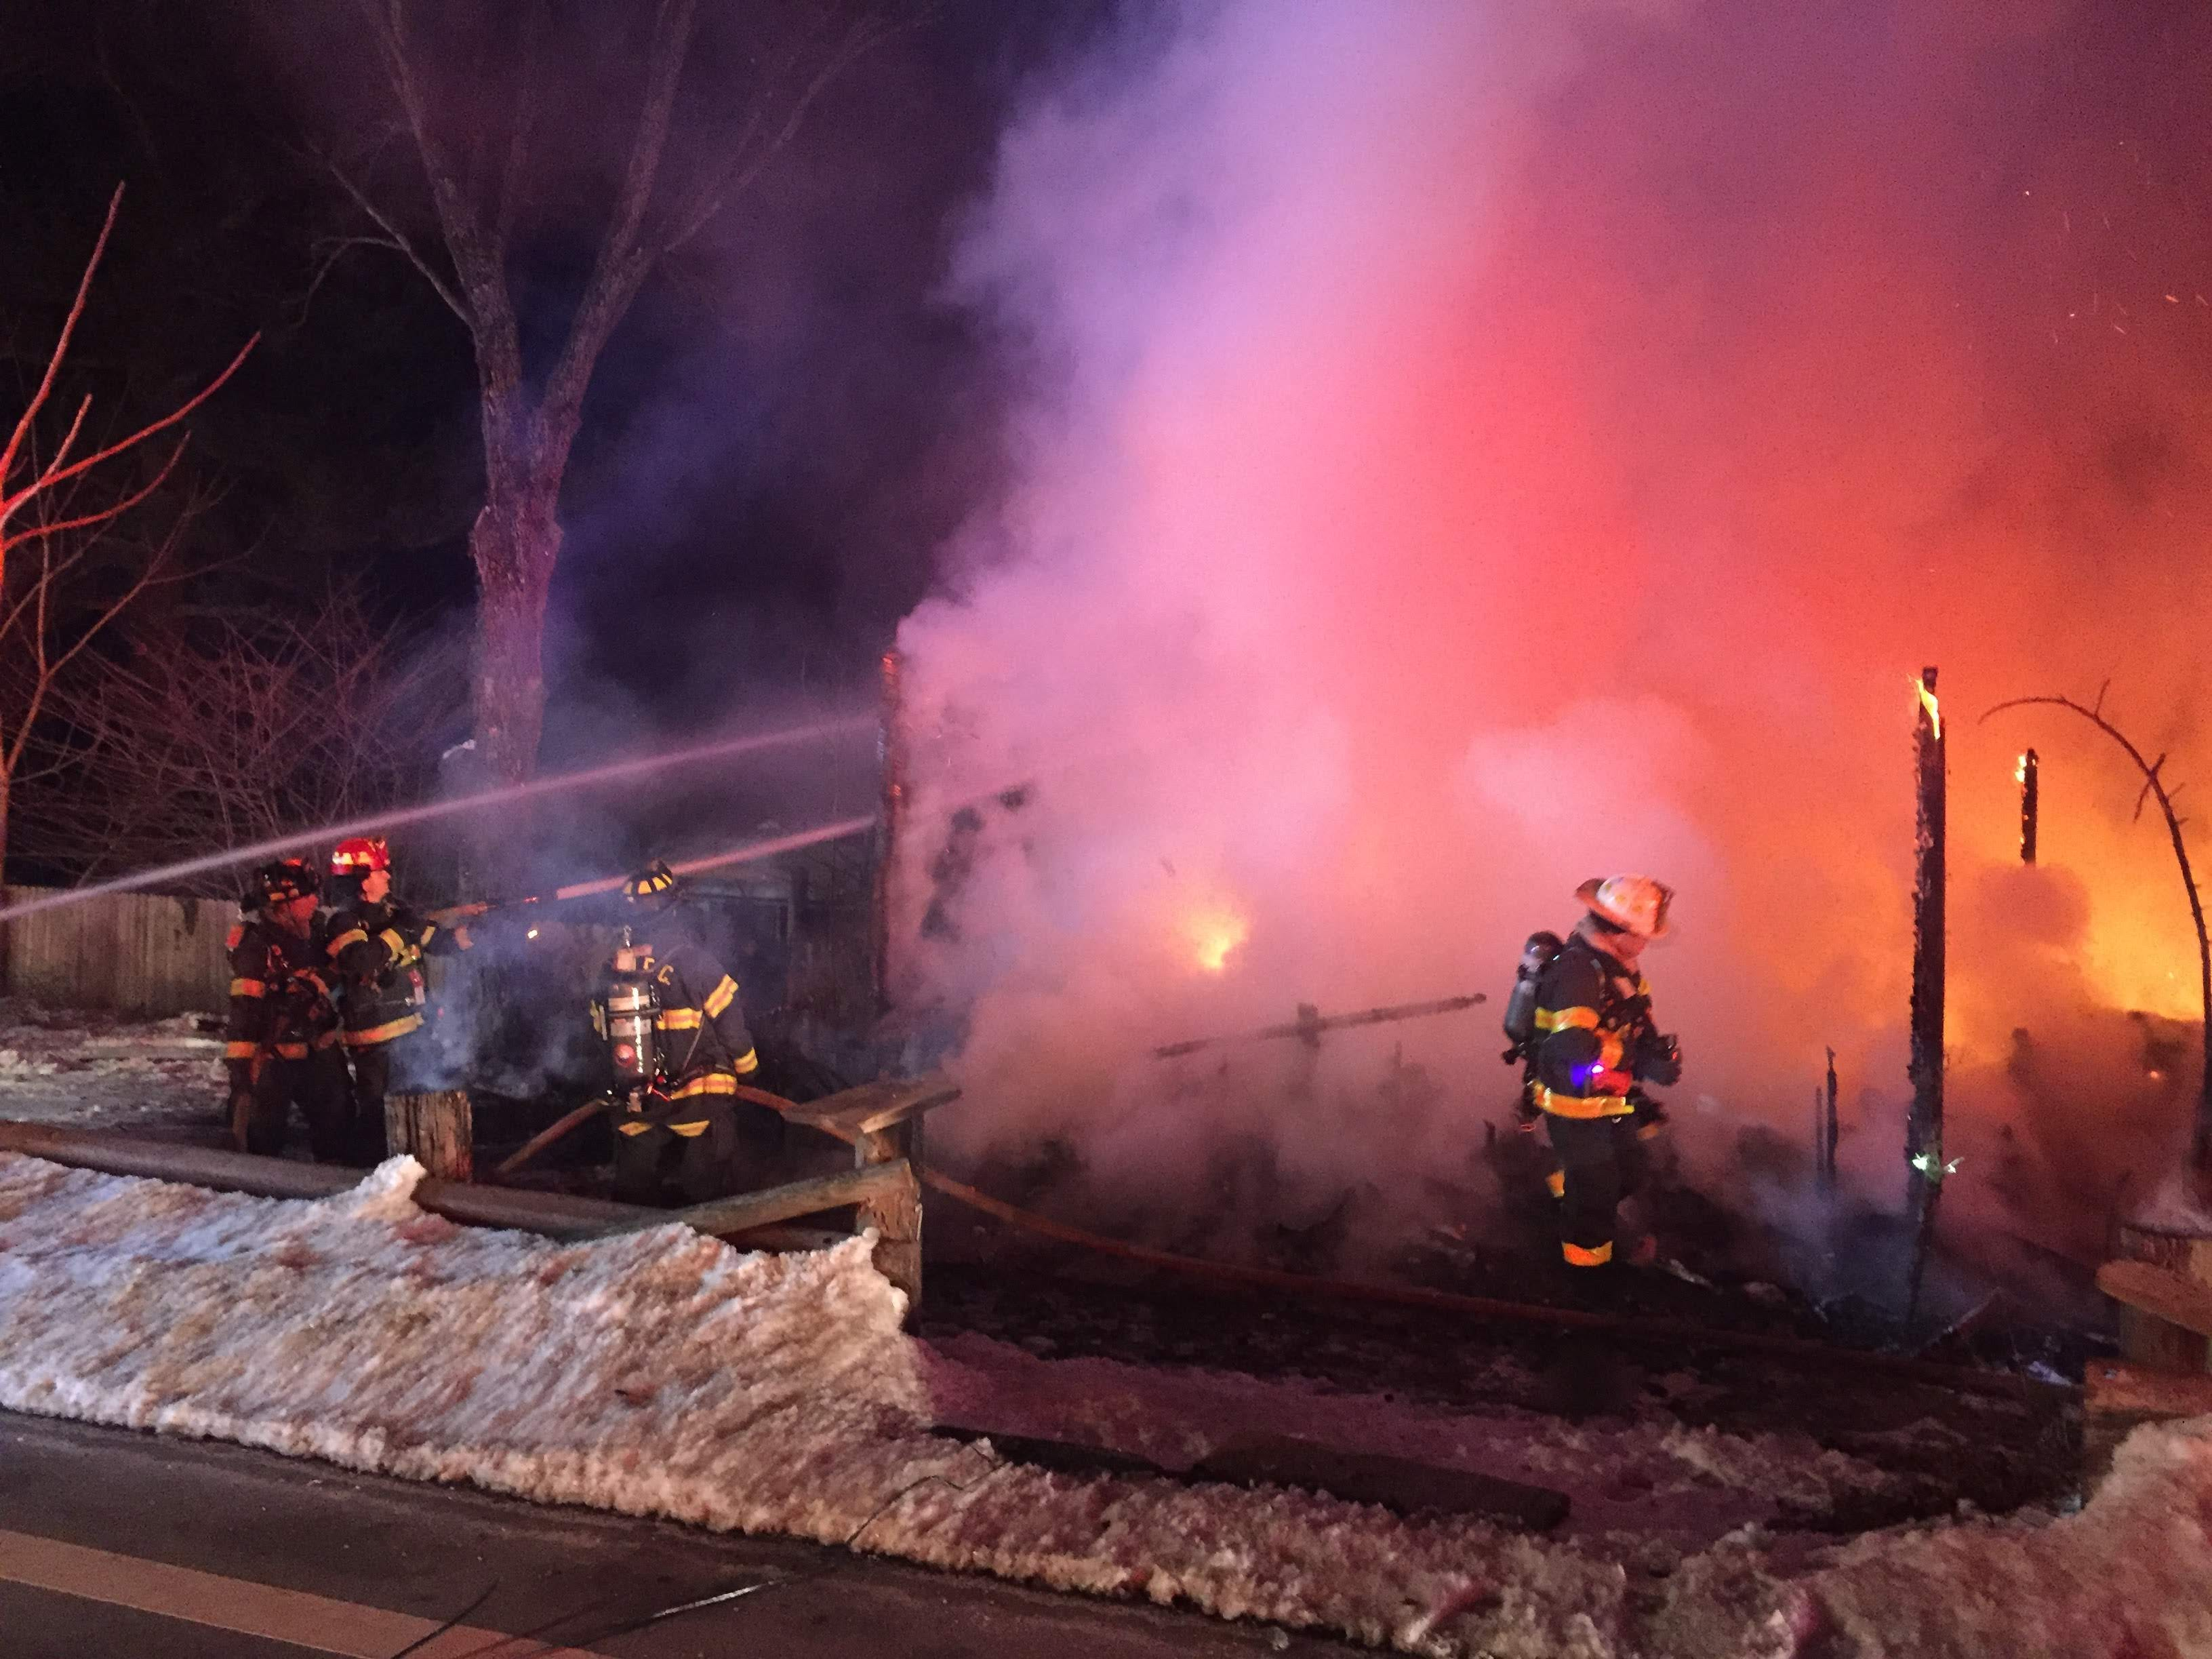 Fire fighters battle an early morning fire that claimed a two-story frame house on Route 24 in the Long Valley section of Washington. March 8, 2019